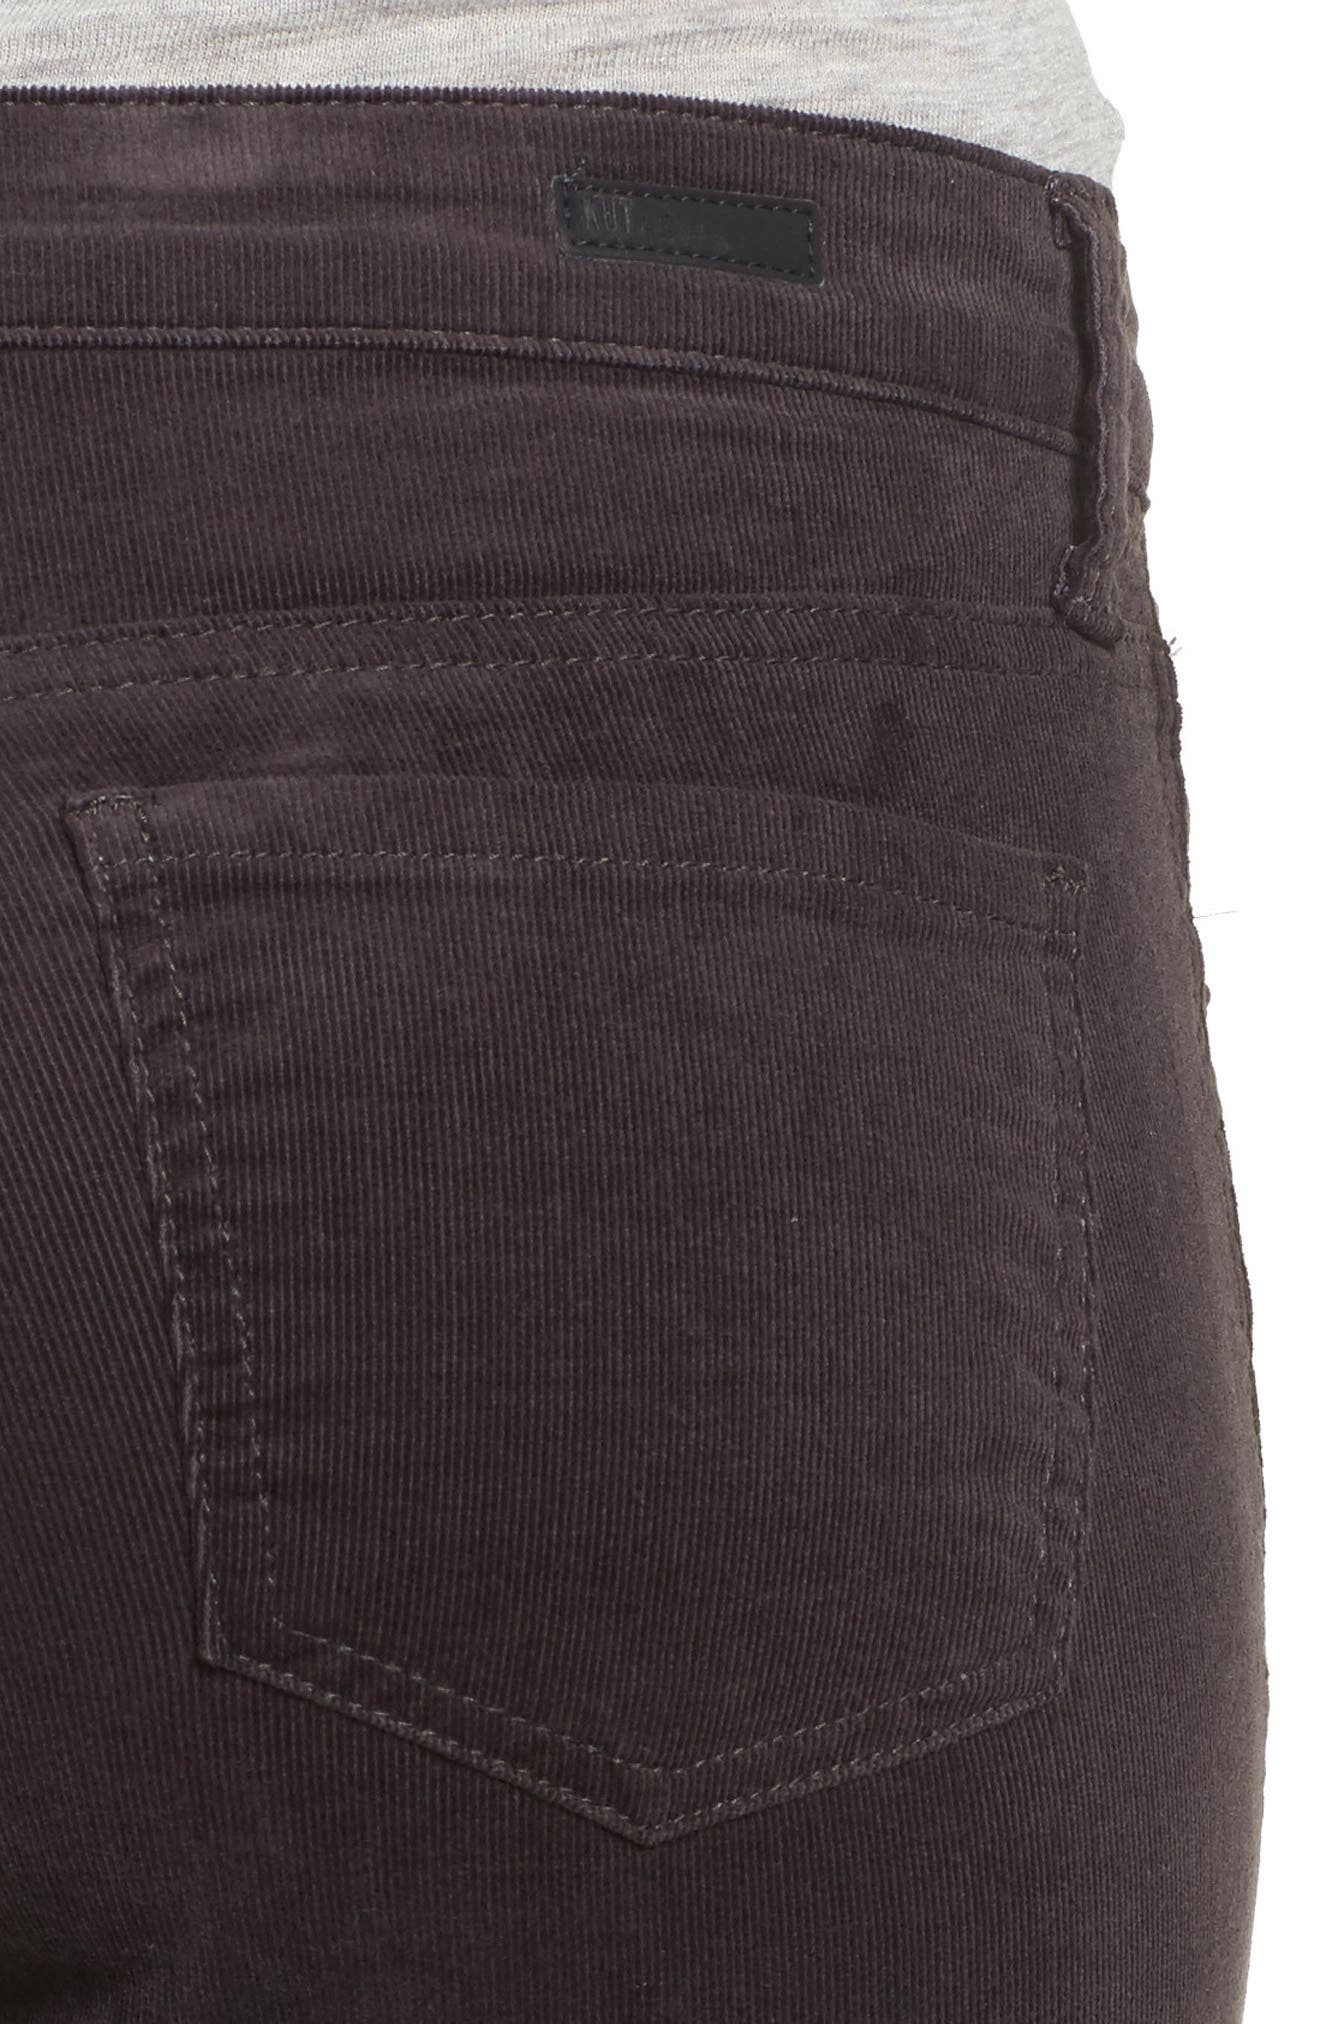 Baby Bootcut Corduroy Jeans,                             Alternate thumbnail 93, color,